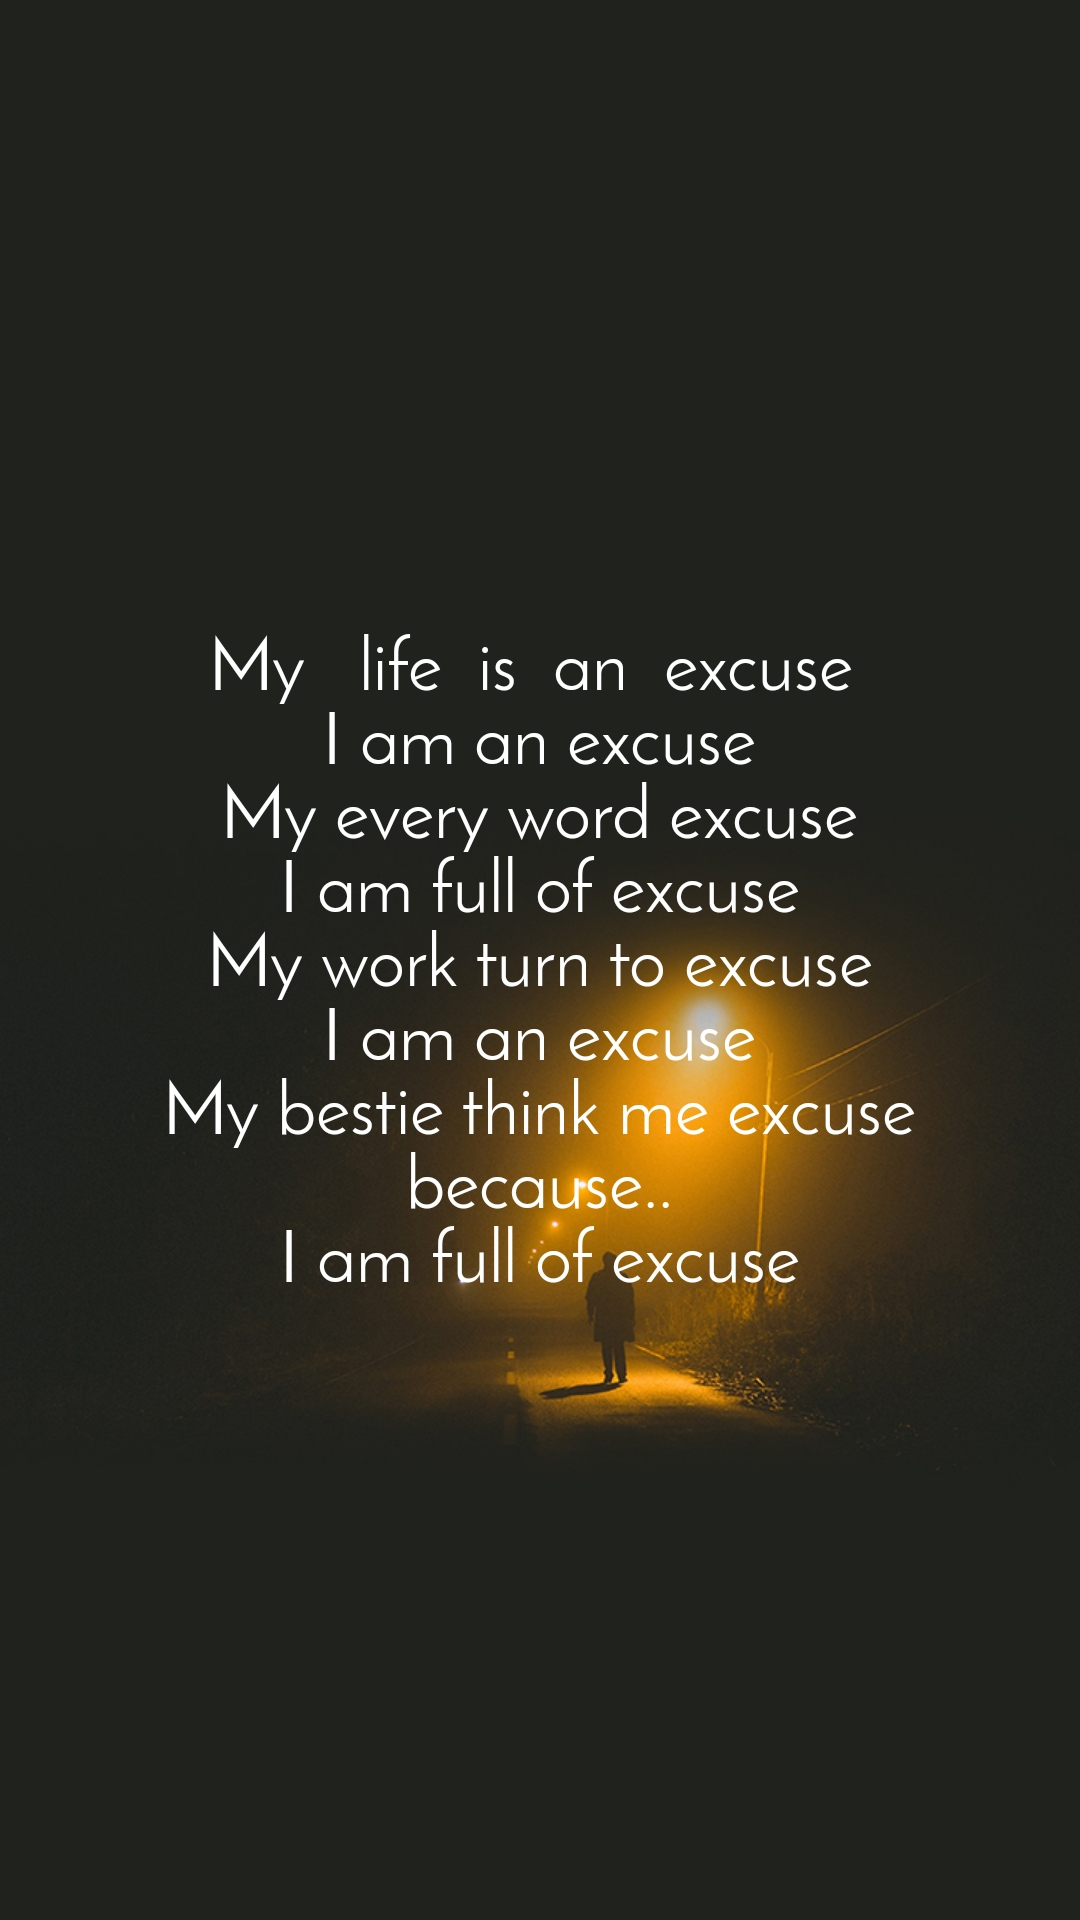 My   life  is  an  excuse  I am an excuse My every word excuse I am full of excuse My work turn to excuse I am an excuse My bestie think me excuse because.. I am full of excuse